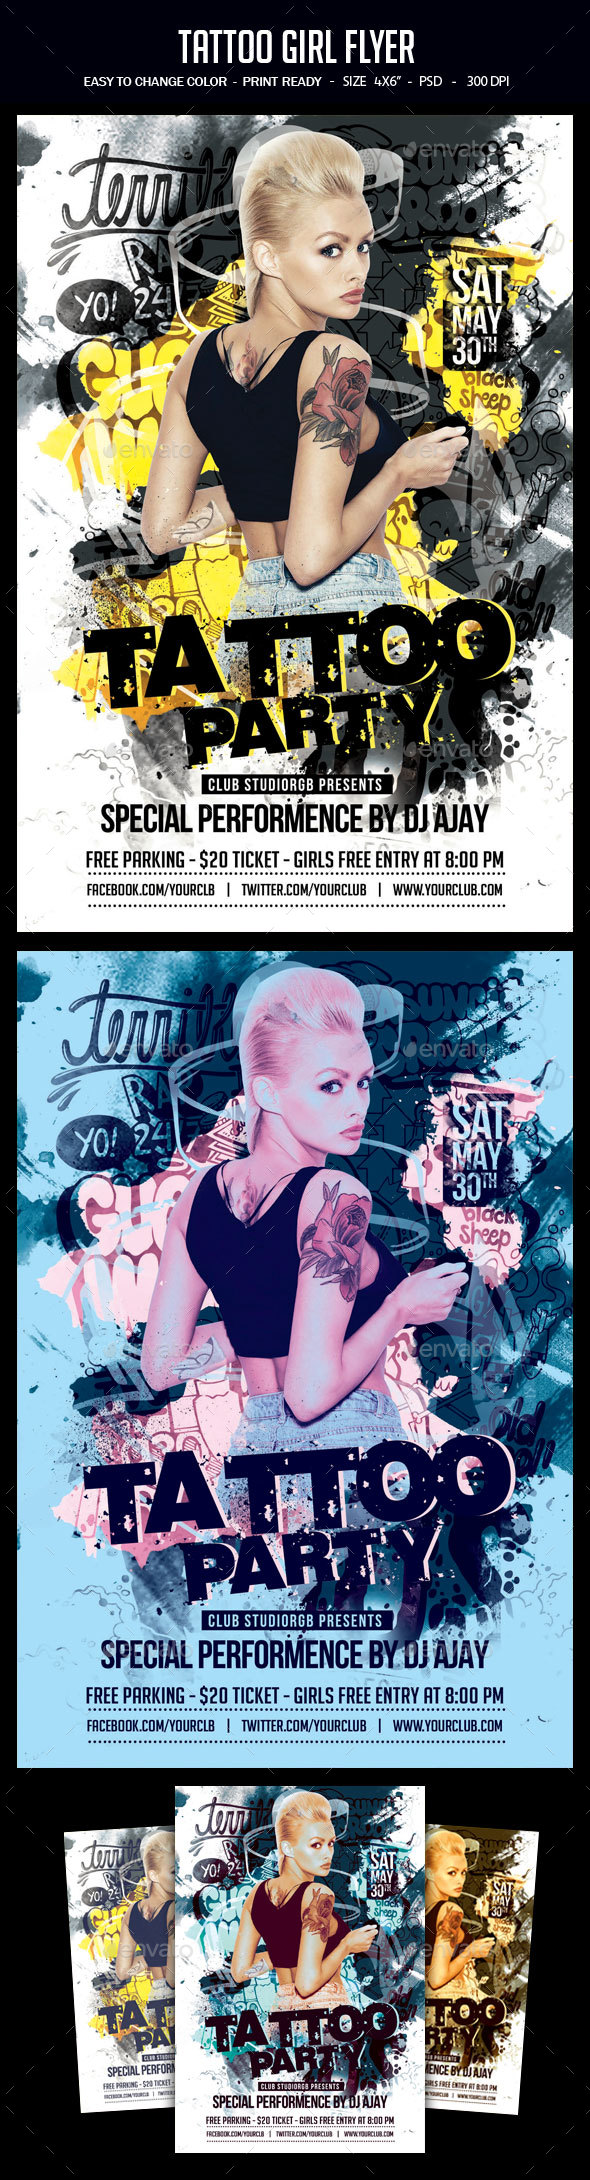 Tattoo Girl Flyer - Clubs & Parties Events